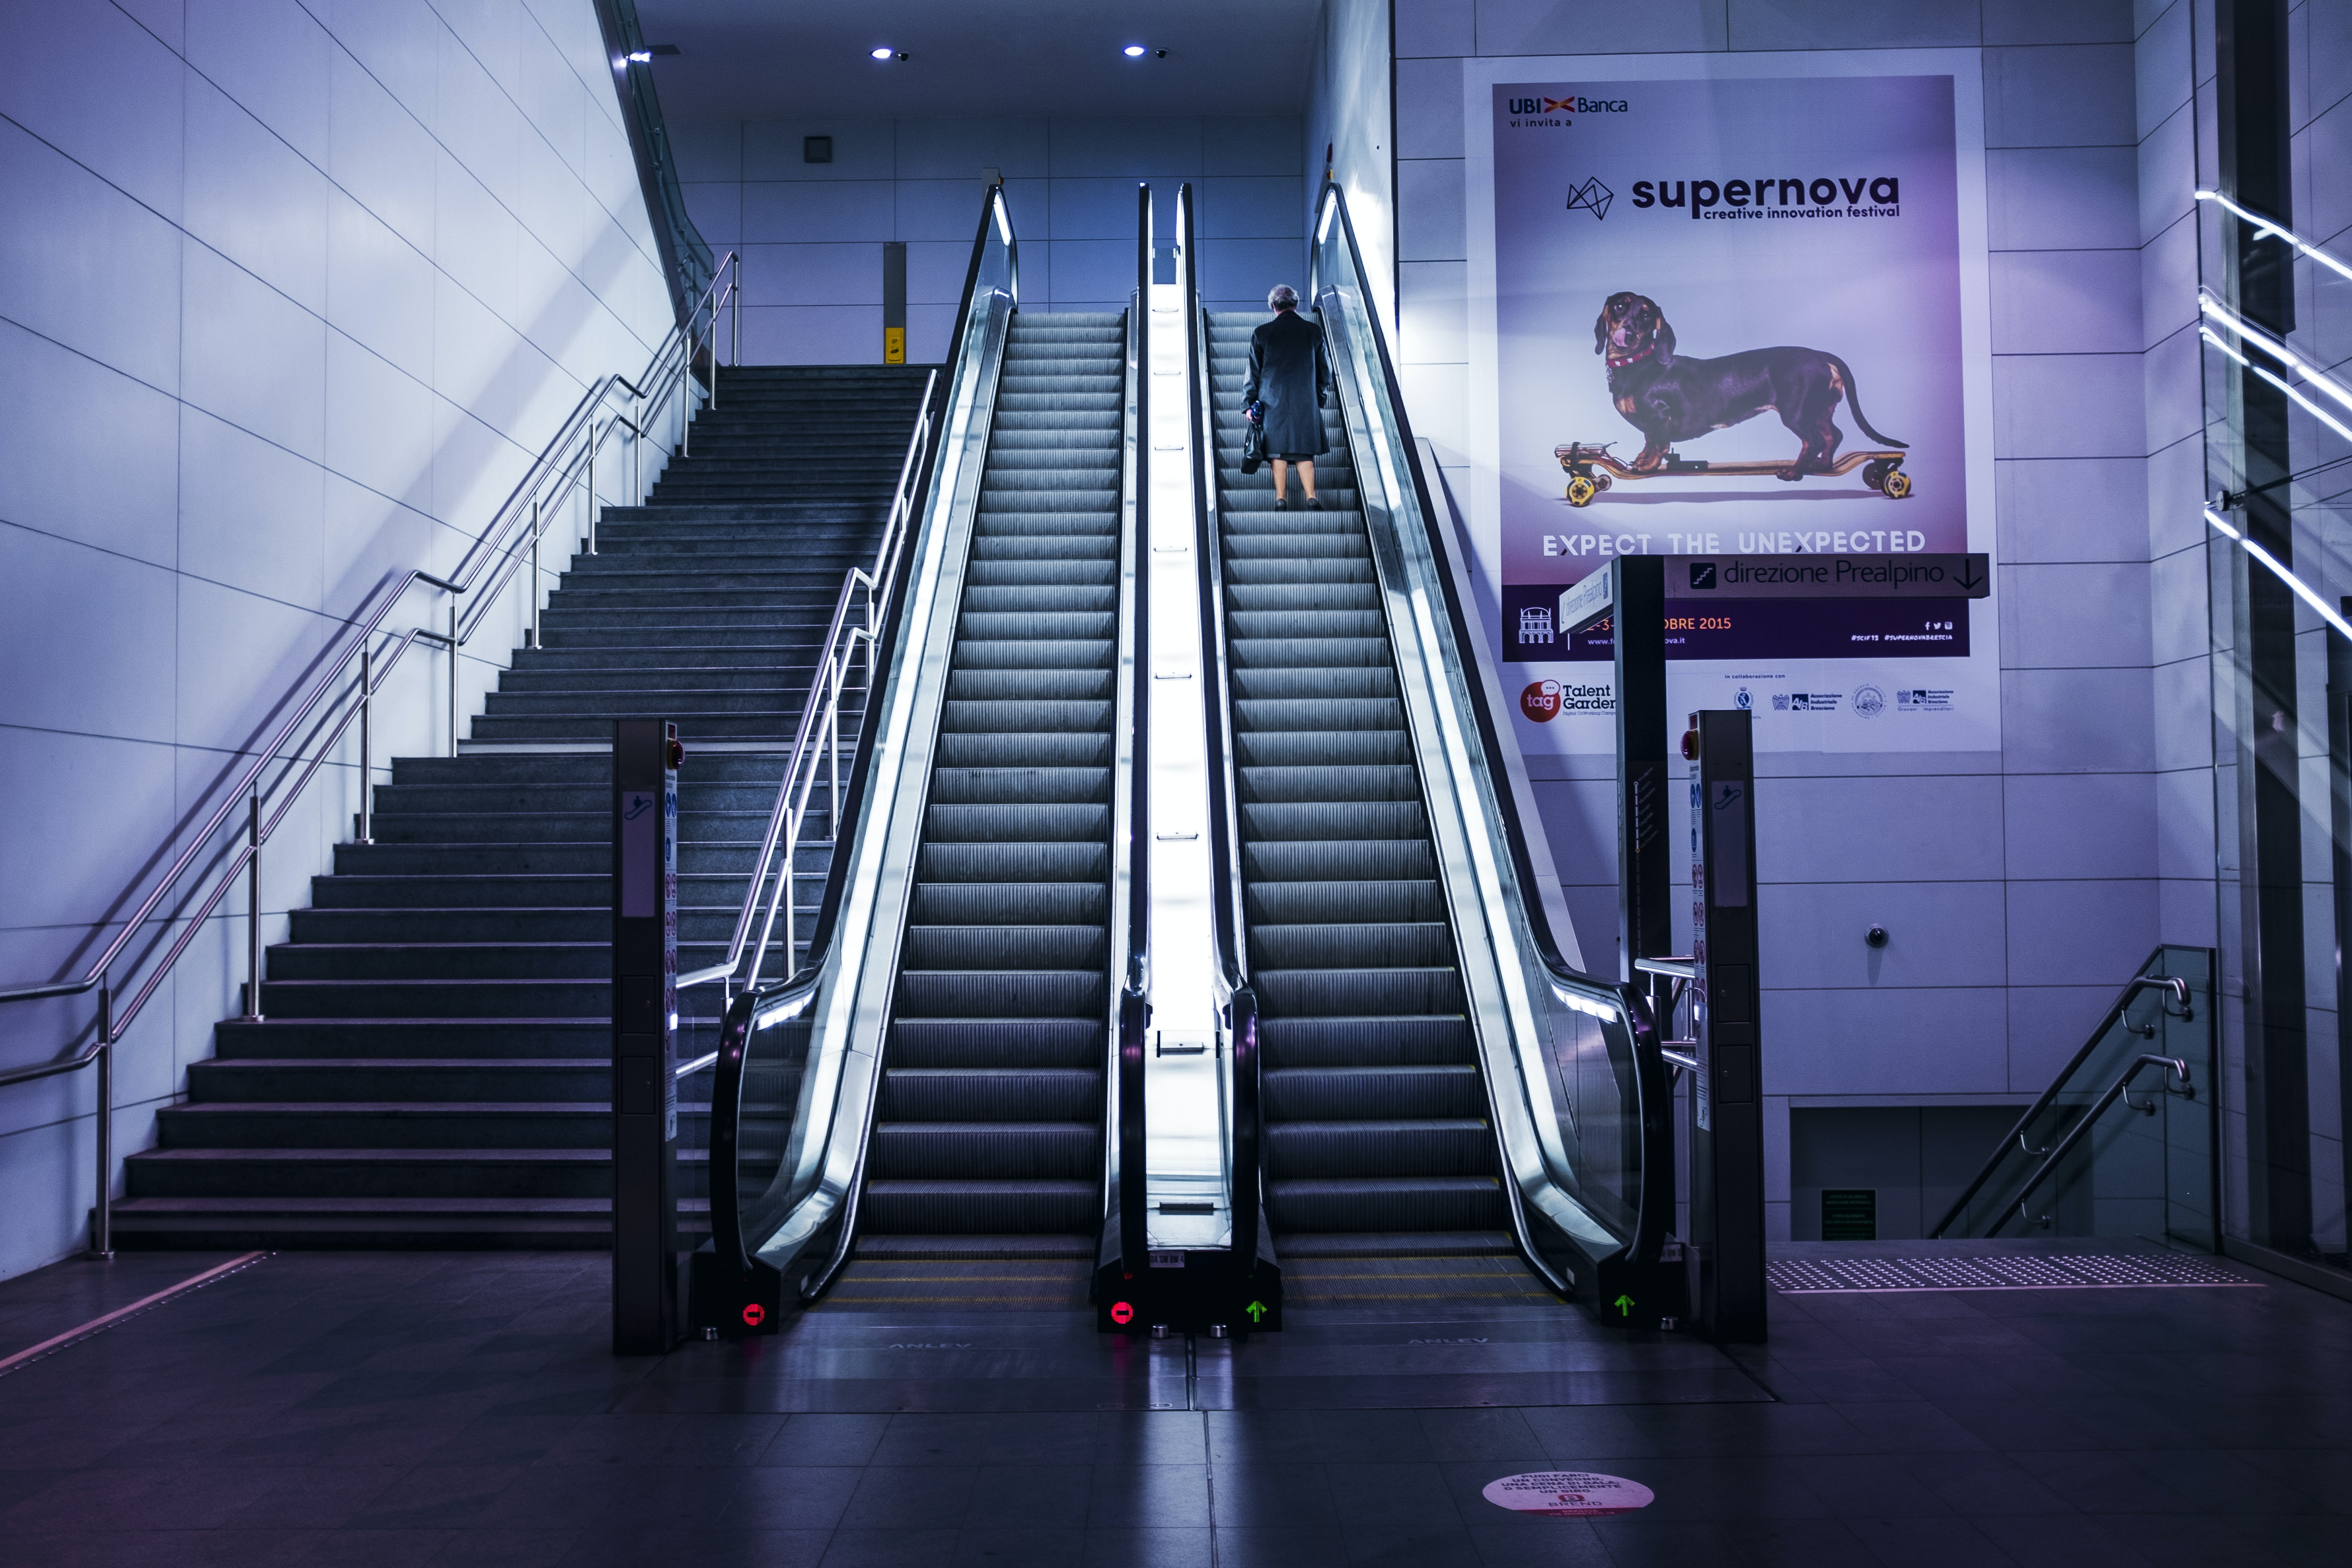 Underground escalator with modern architecture with a poster on the wall of a dog